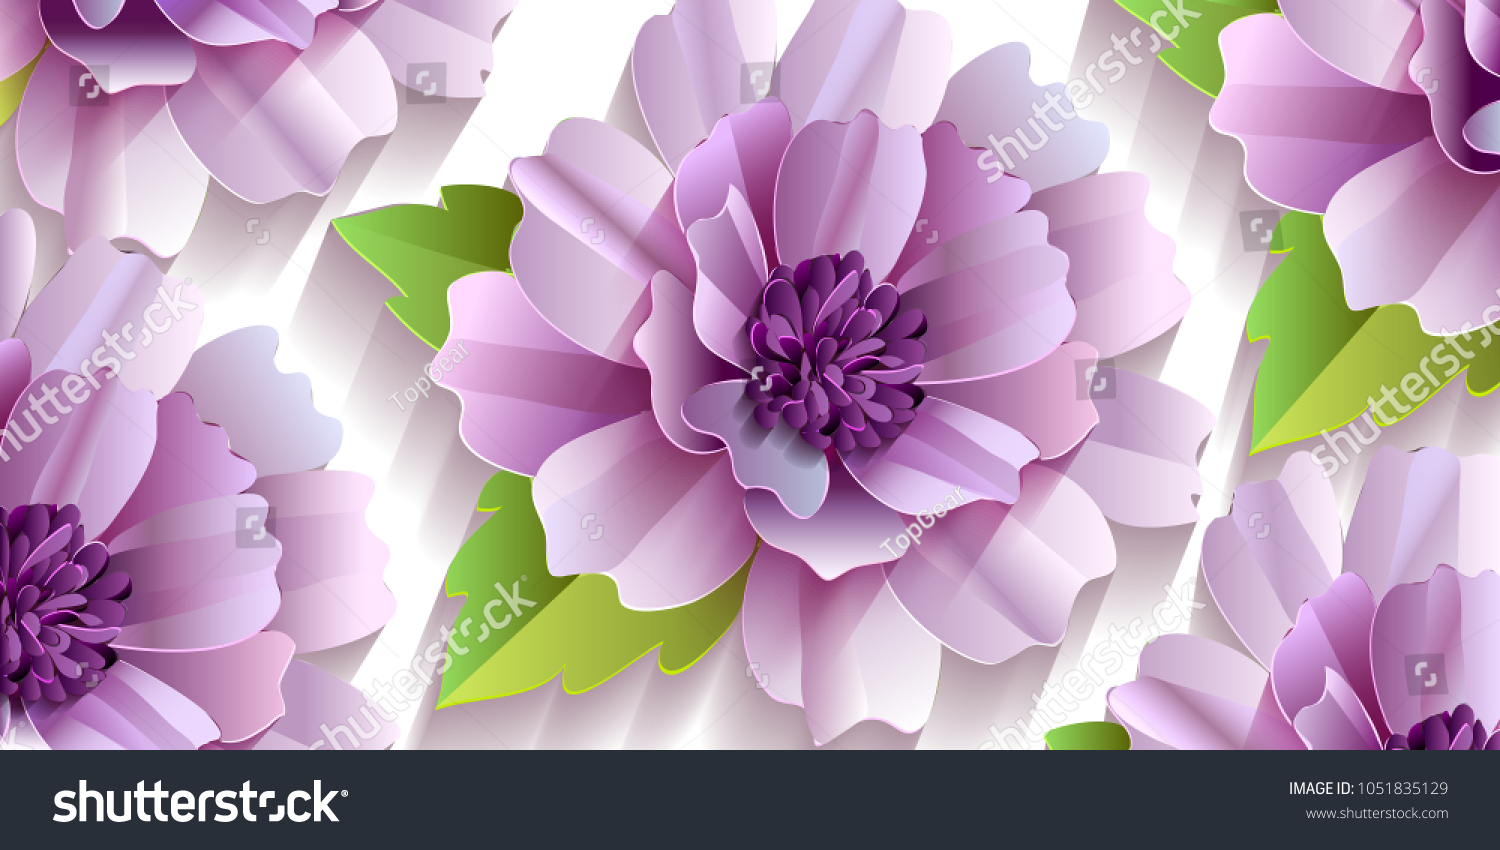 Quilling Paper Cut Flowers Leaves On Stock Vector Royalty Free